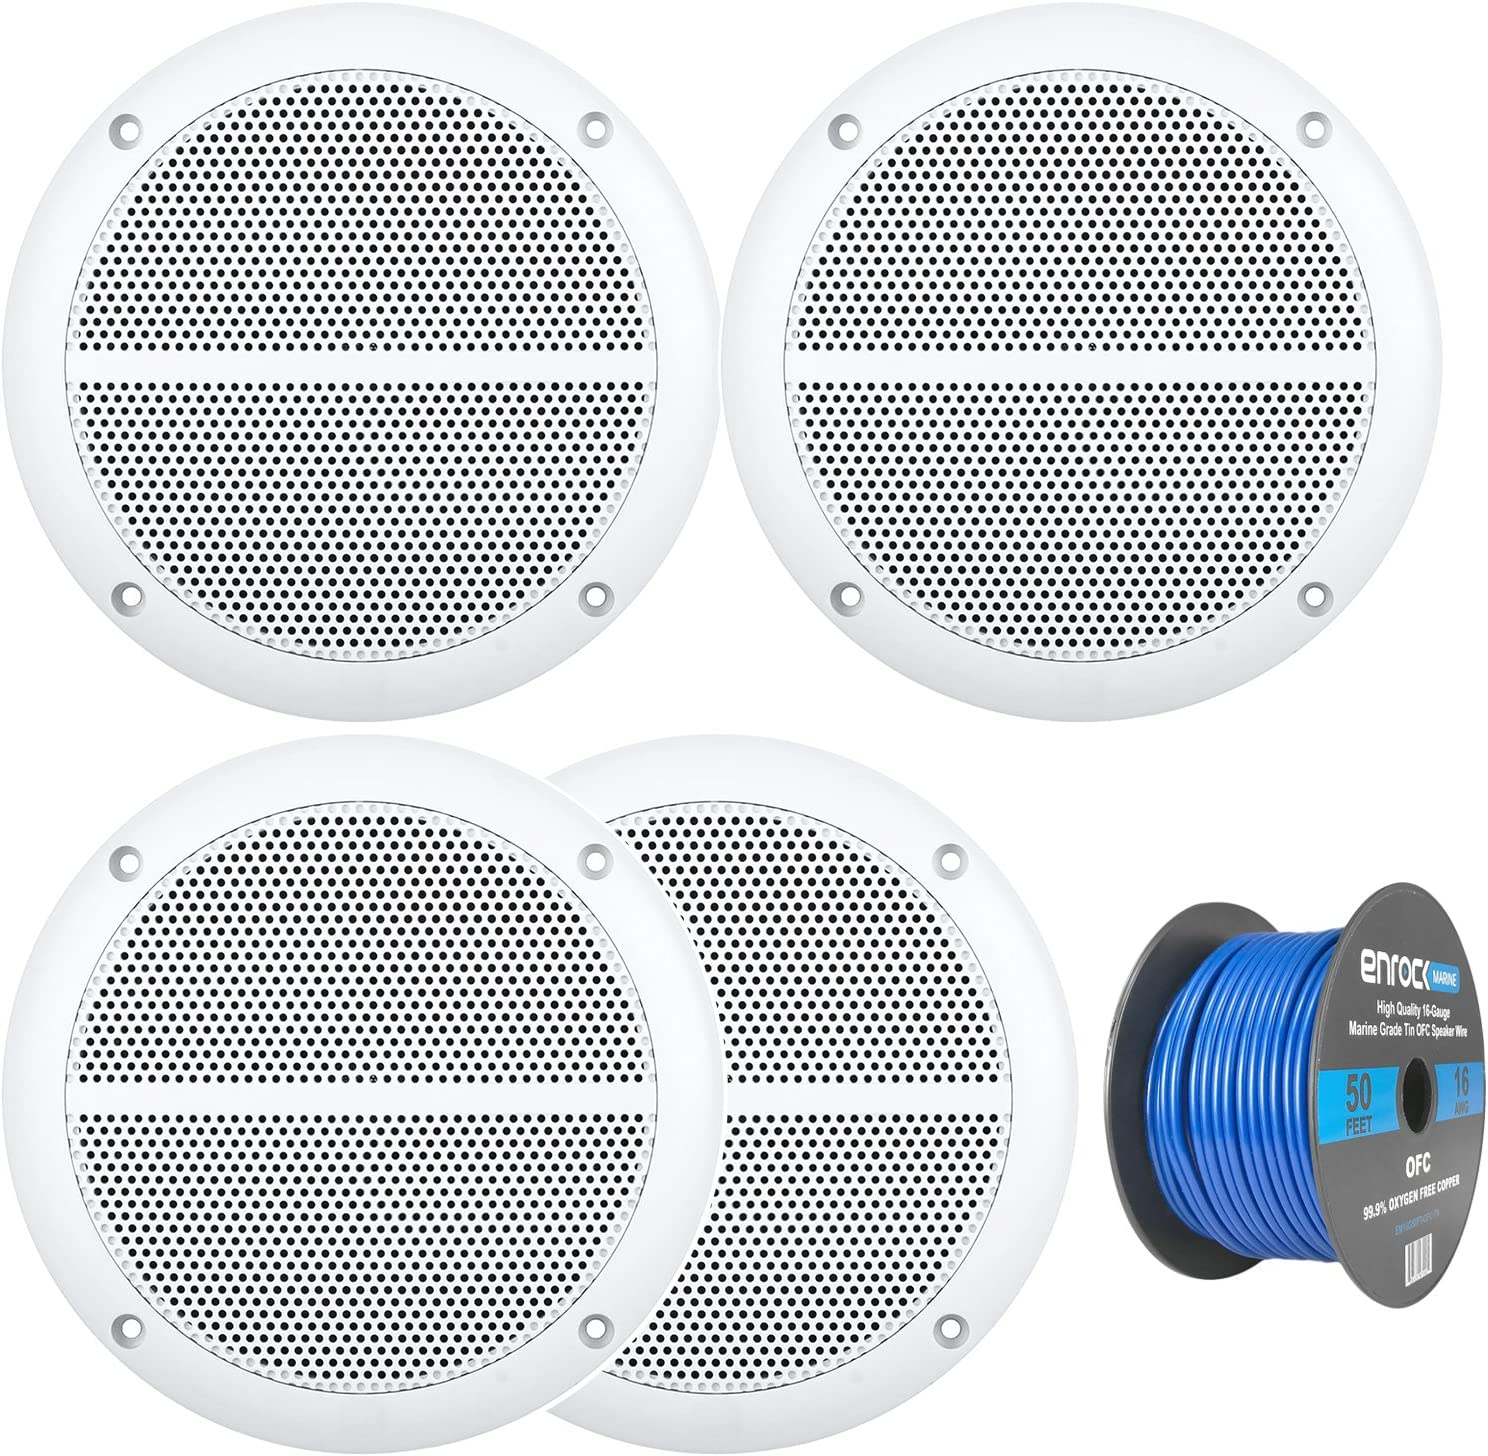 Car Speaker Package of 2 Pairs of Enrock Marine Boat 6.5 Inch Dual-Cone White Upgarde Audio Stereo Coaxial Speakers Bundle Combo with Enrock 50 Foot 16 Gauge Speaker Wire